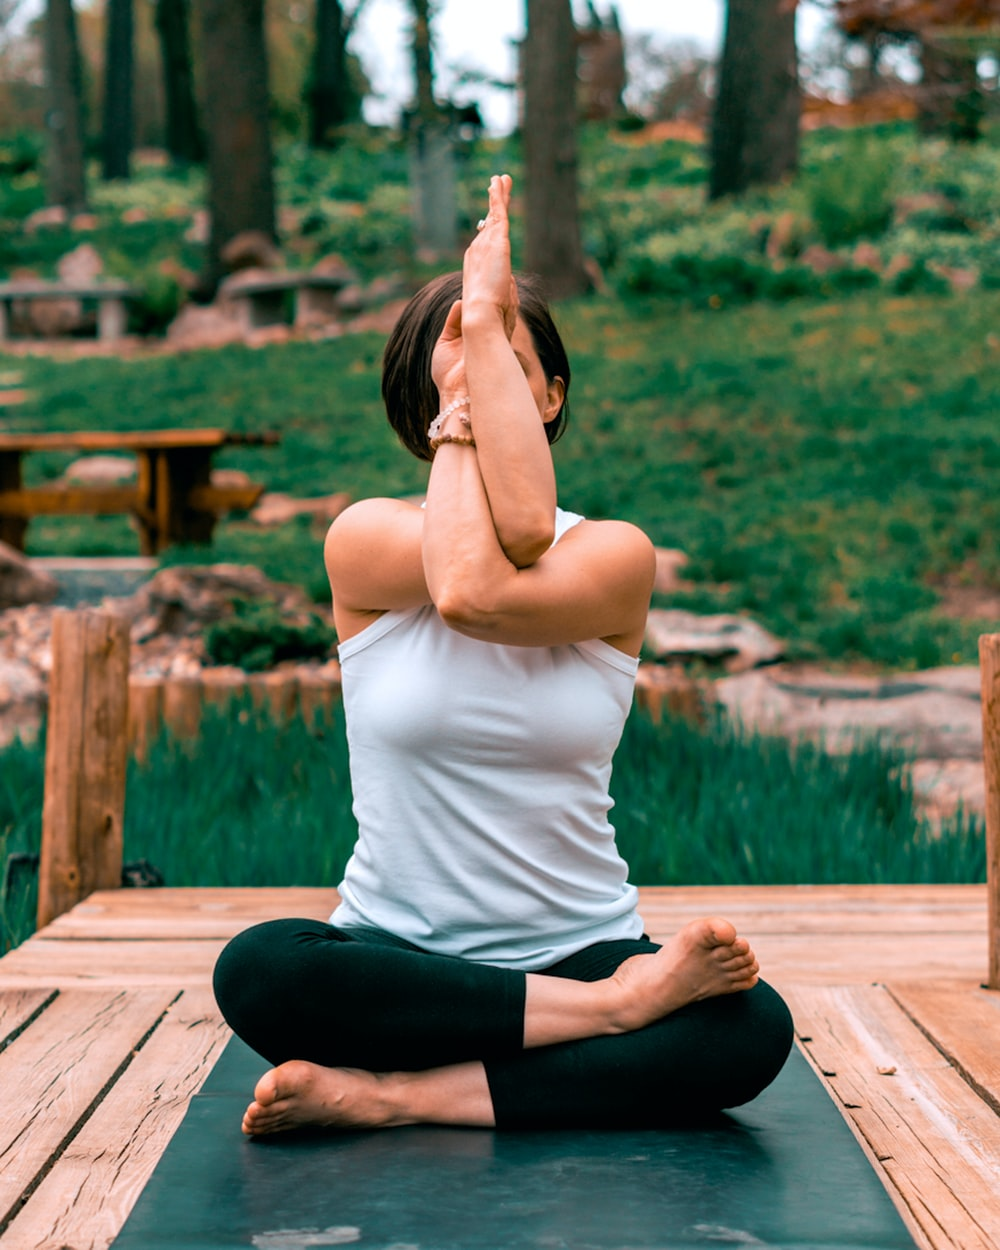 500 Yoga Pose Pictures Hd Download Free Images On Unsplash